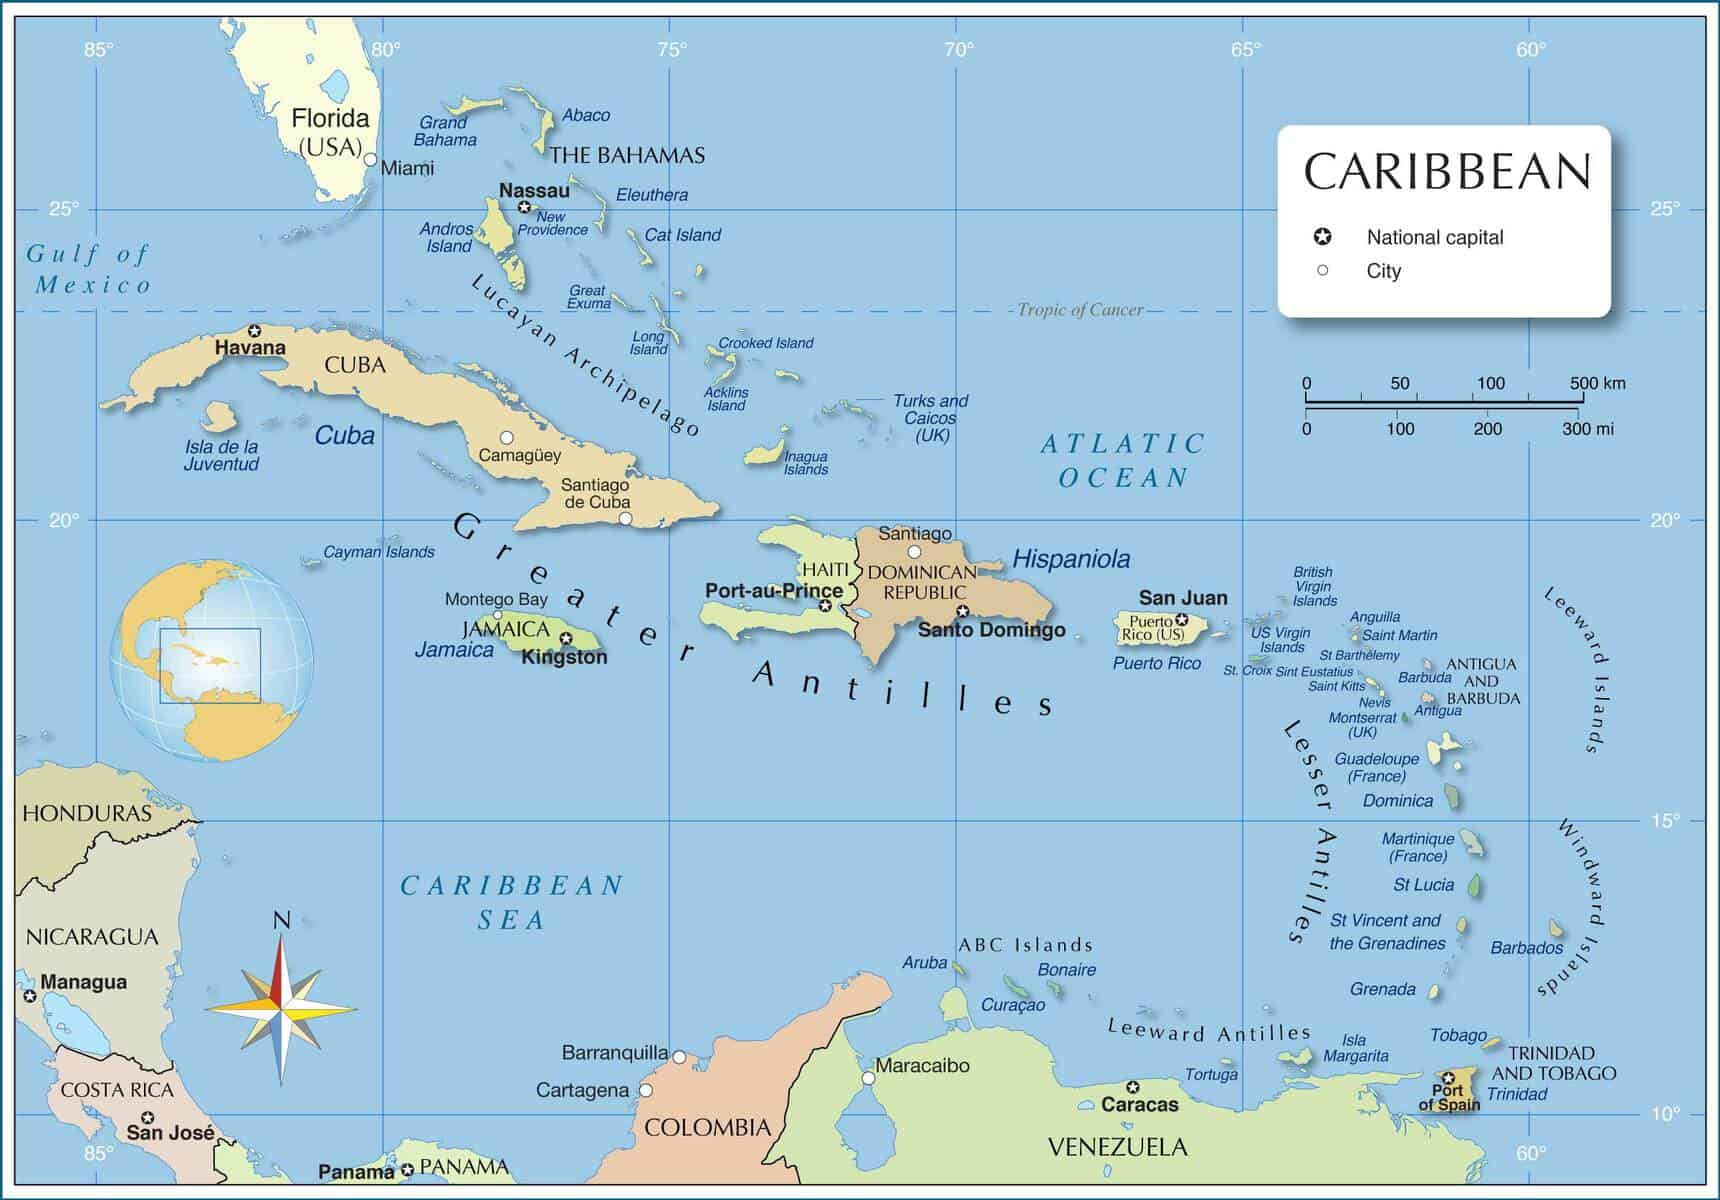 The Political map of the Caribbean   Key Caribe